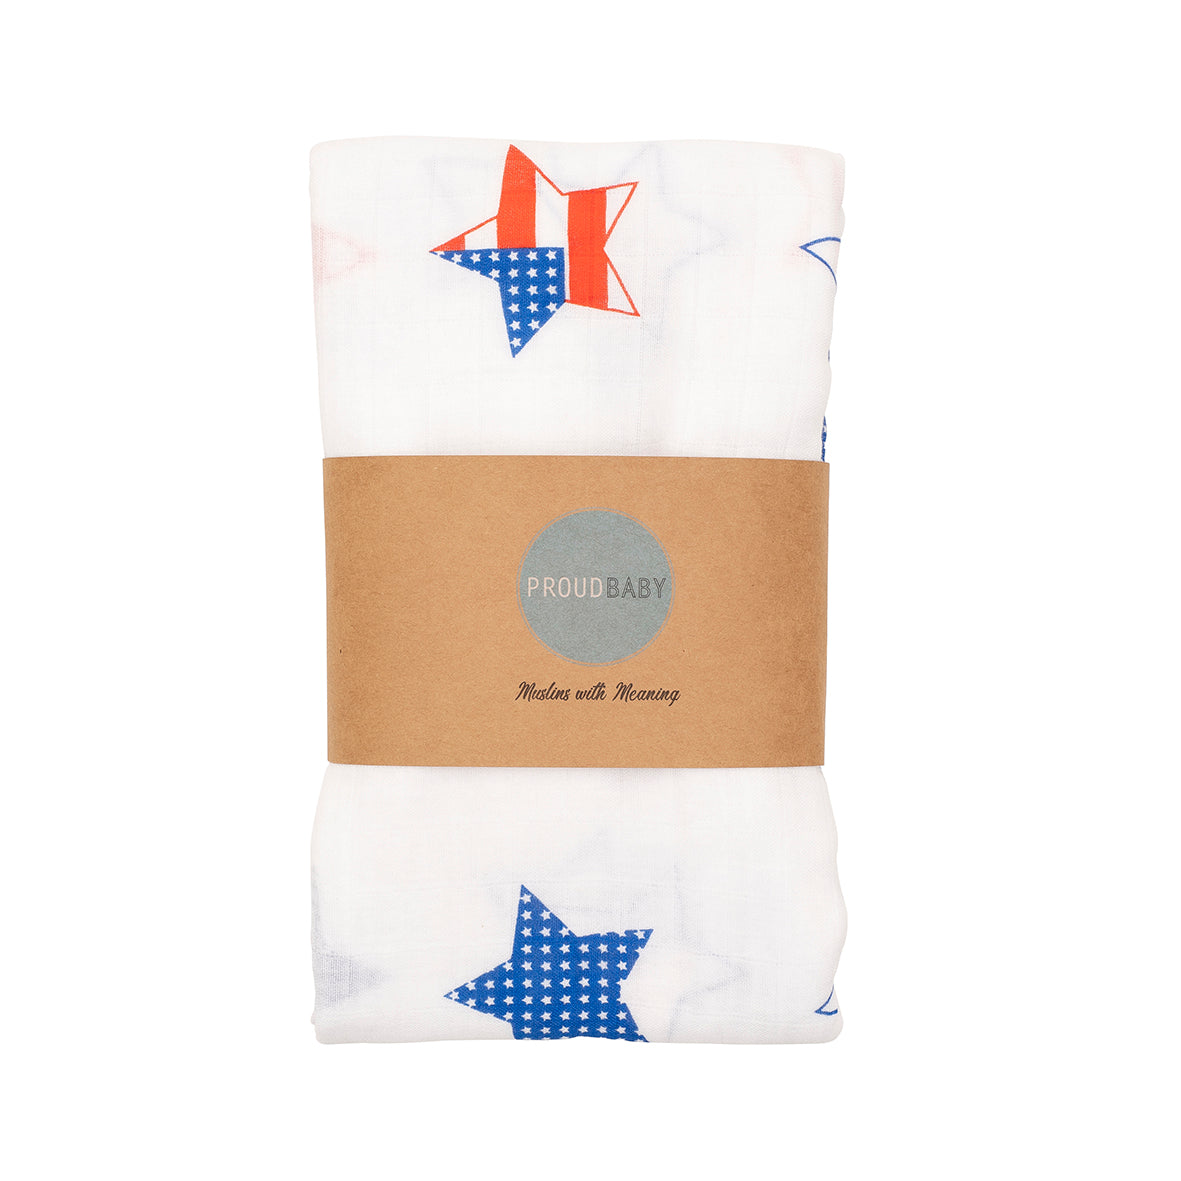 USA American stars and stripes baby muslin swaddle gift